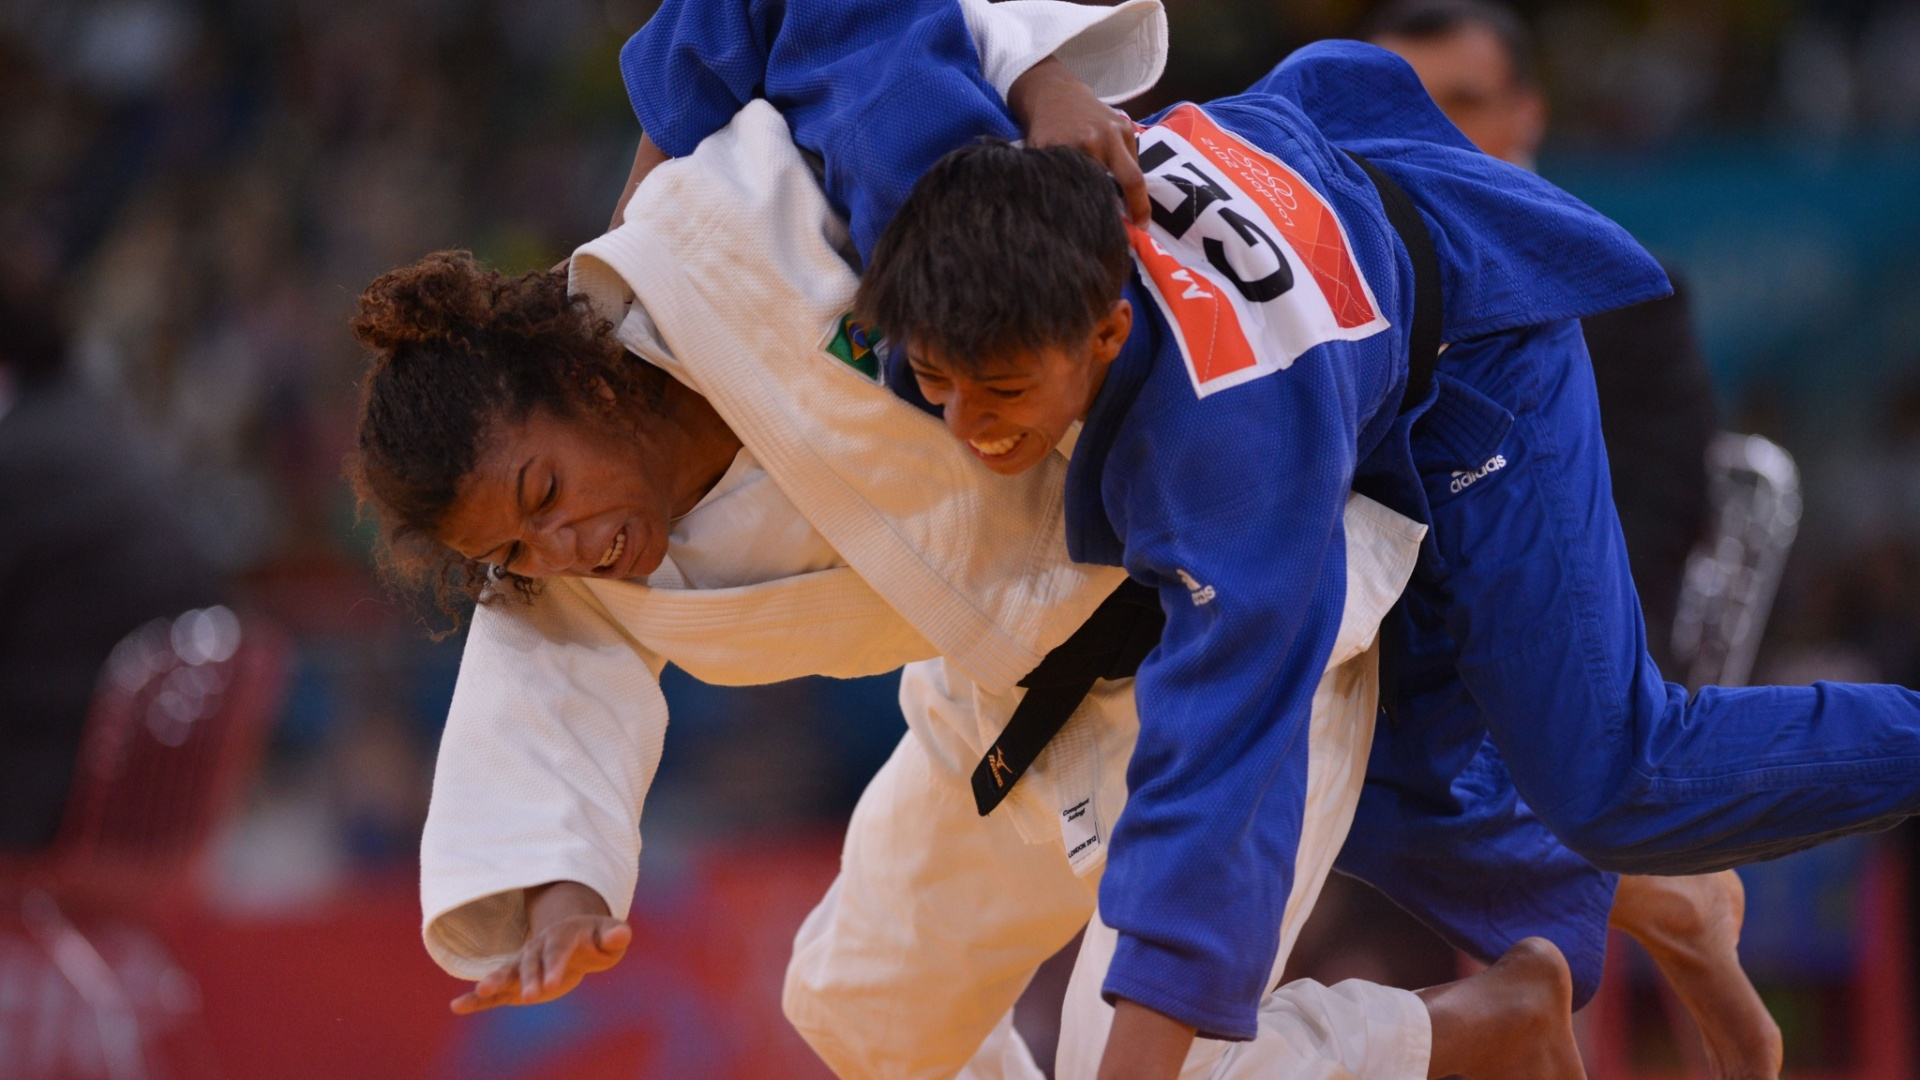 Judoca Rafaela Silva venceu com facilidade a alem Miryam Roper na sua estreia na categoria at 57 kg